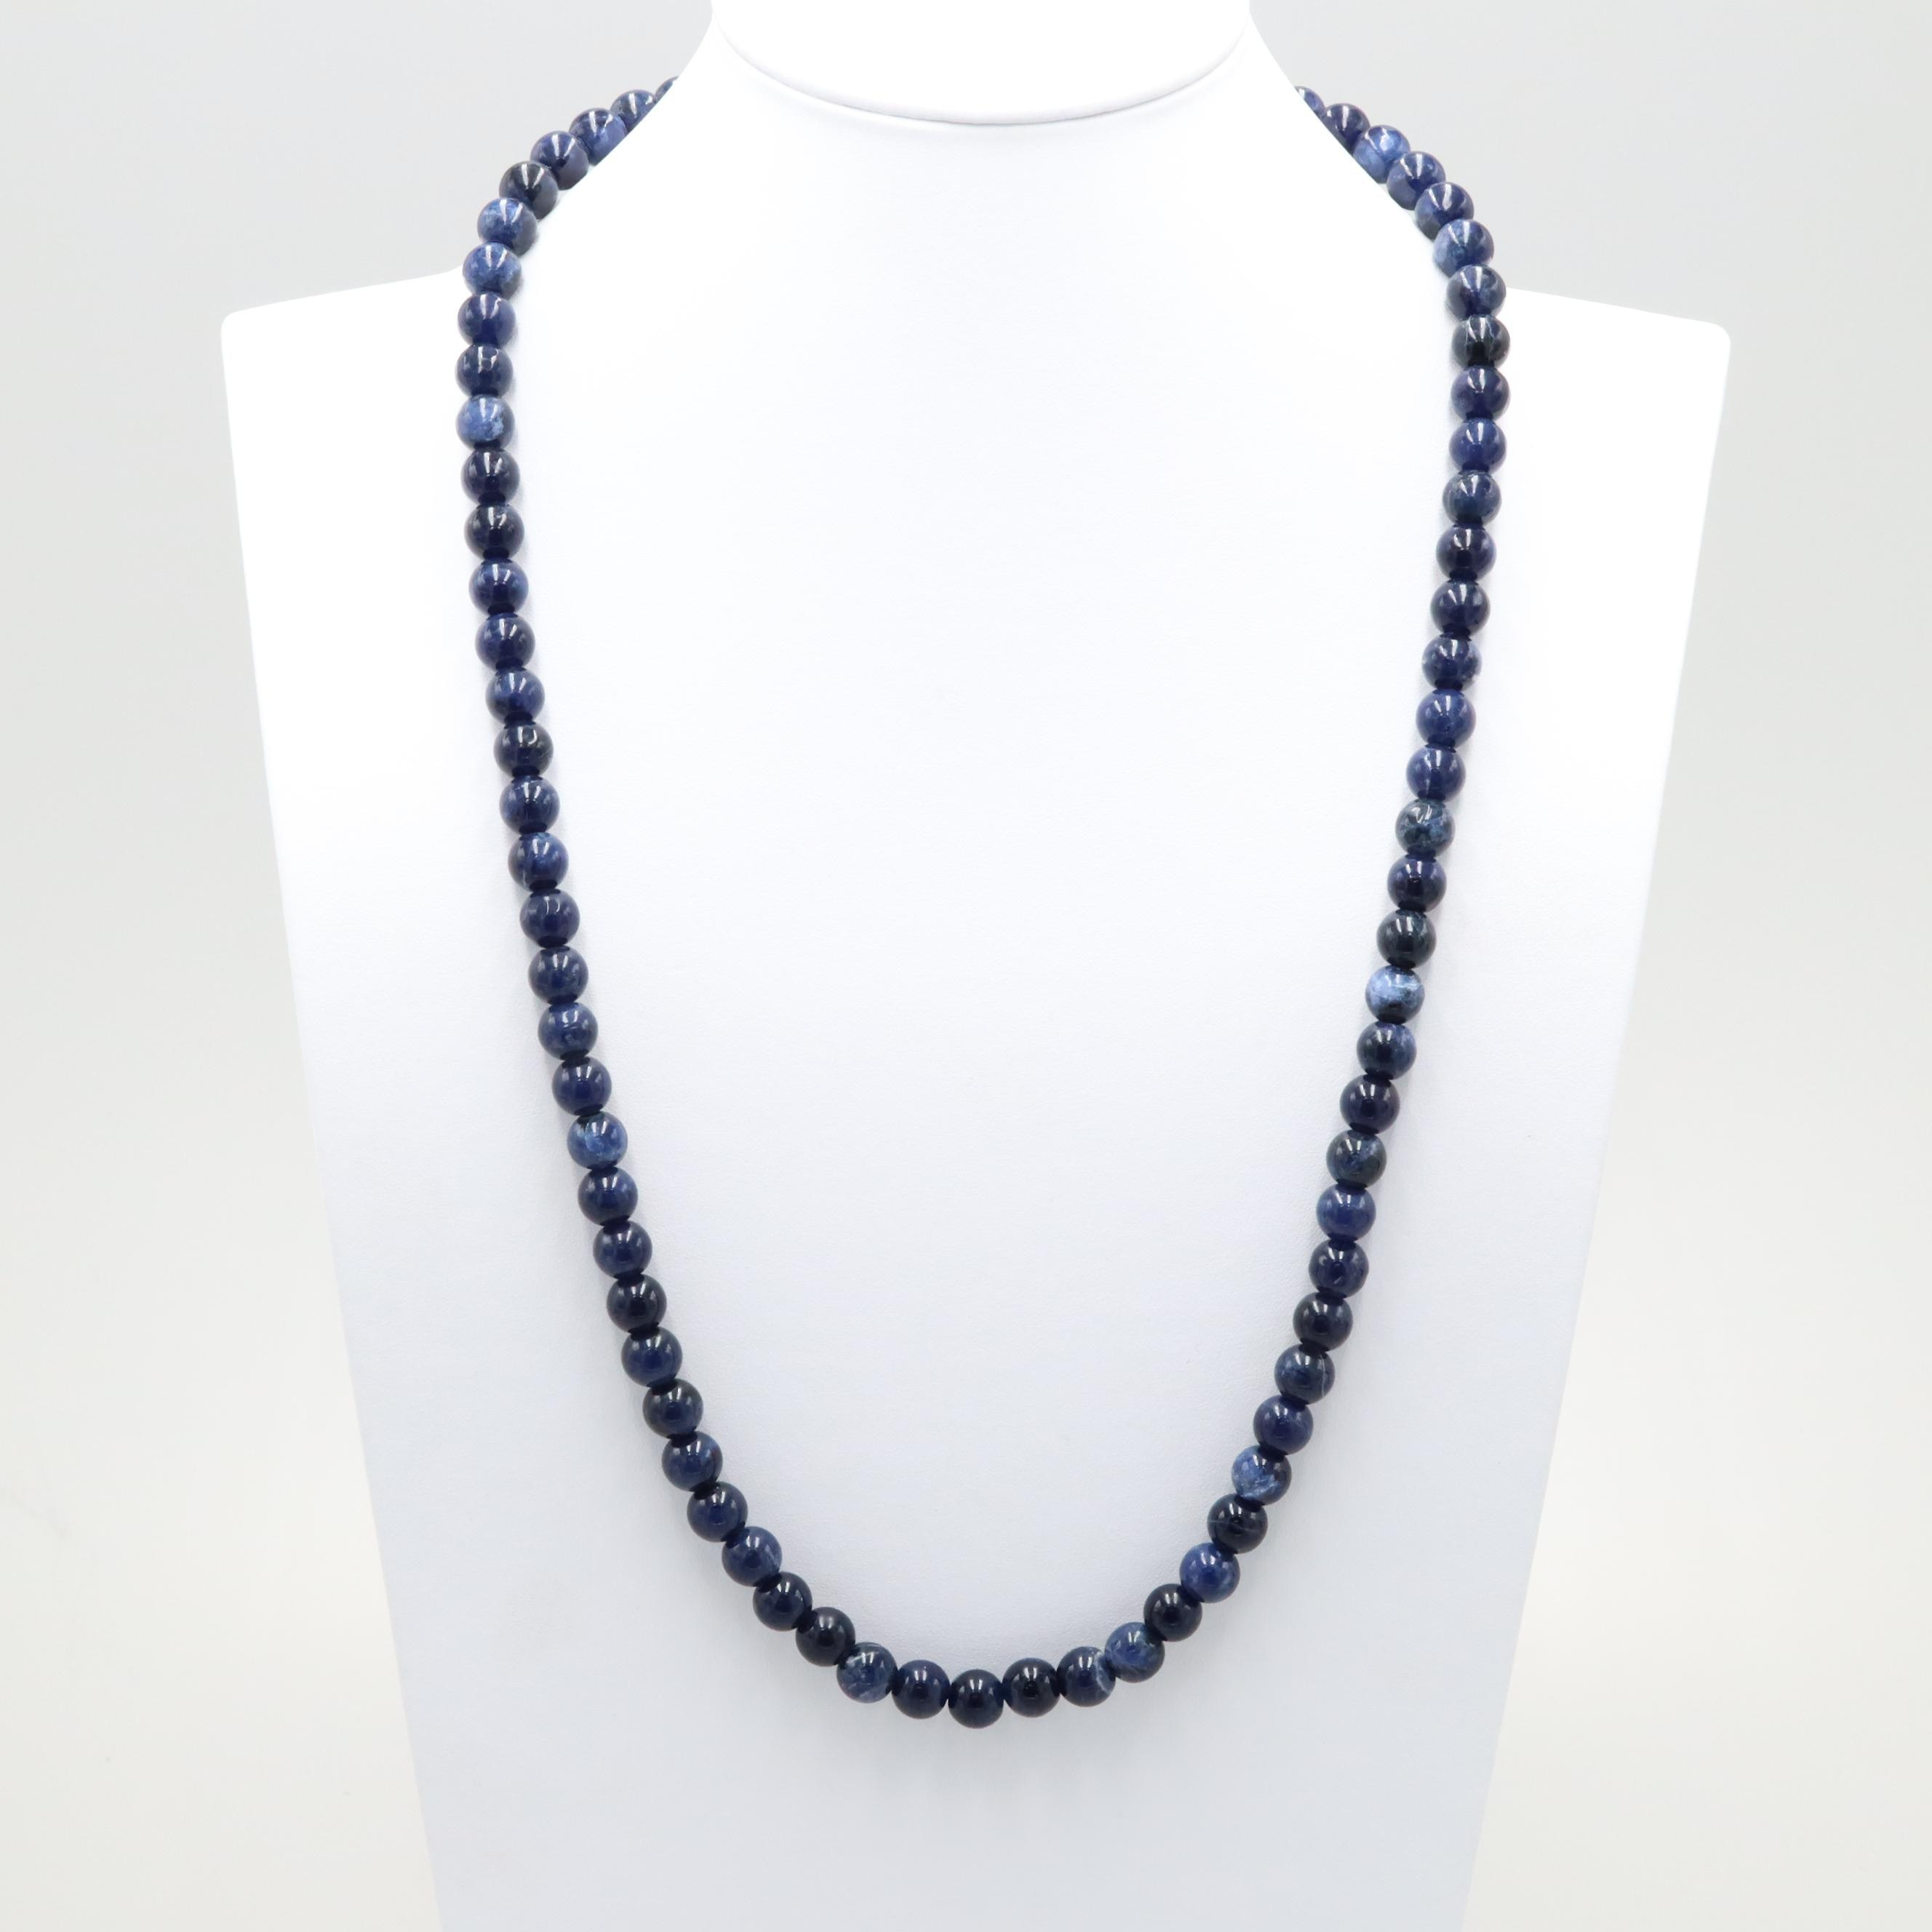 14K Yellow Gold Sodalite Necklace